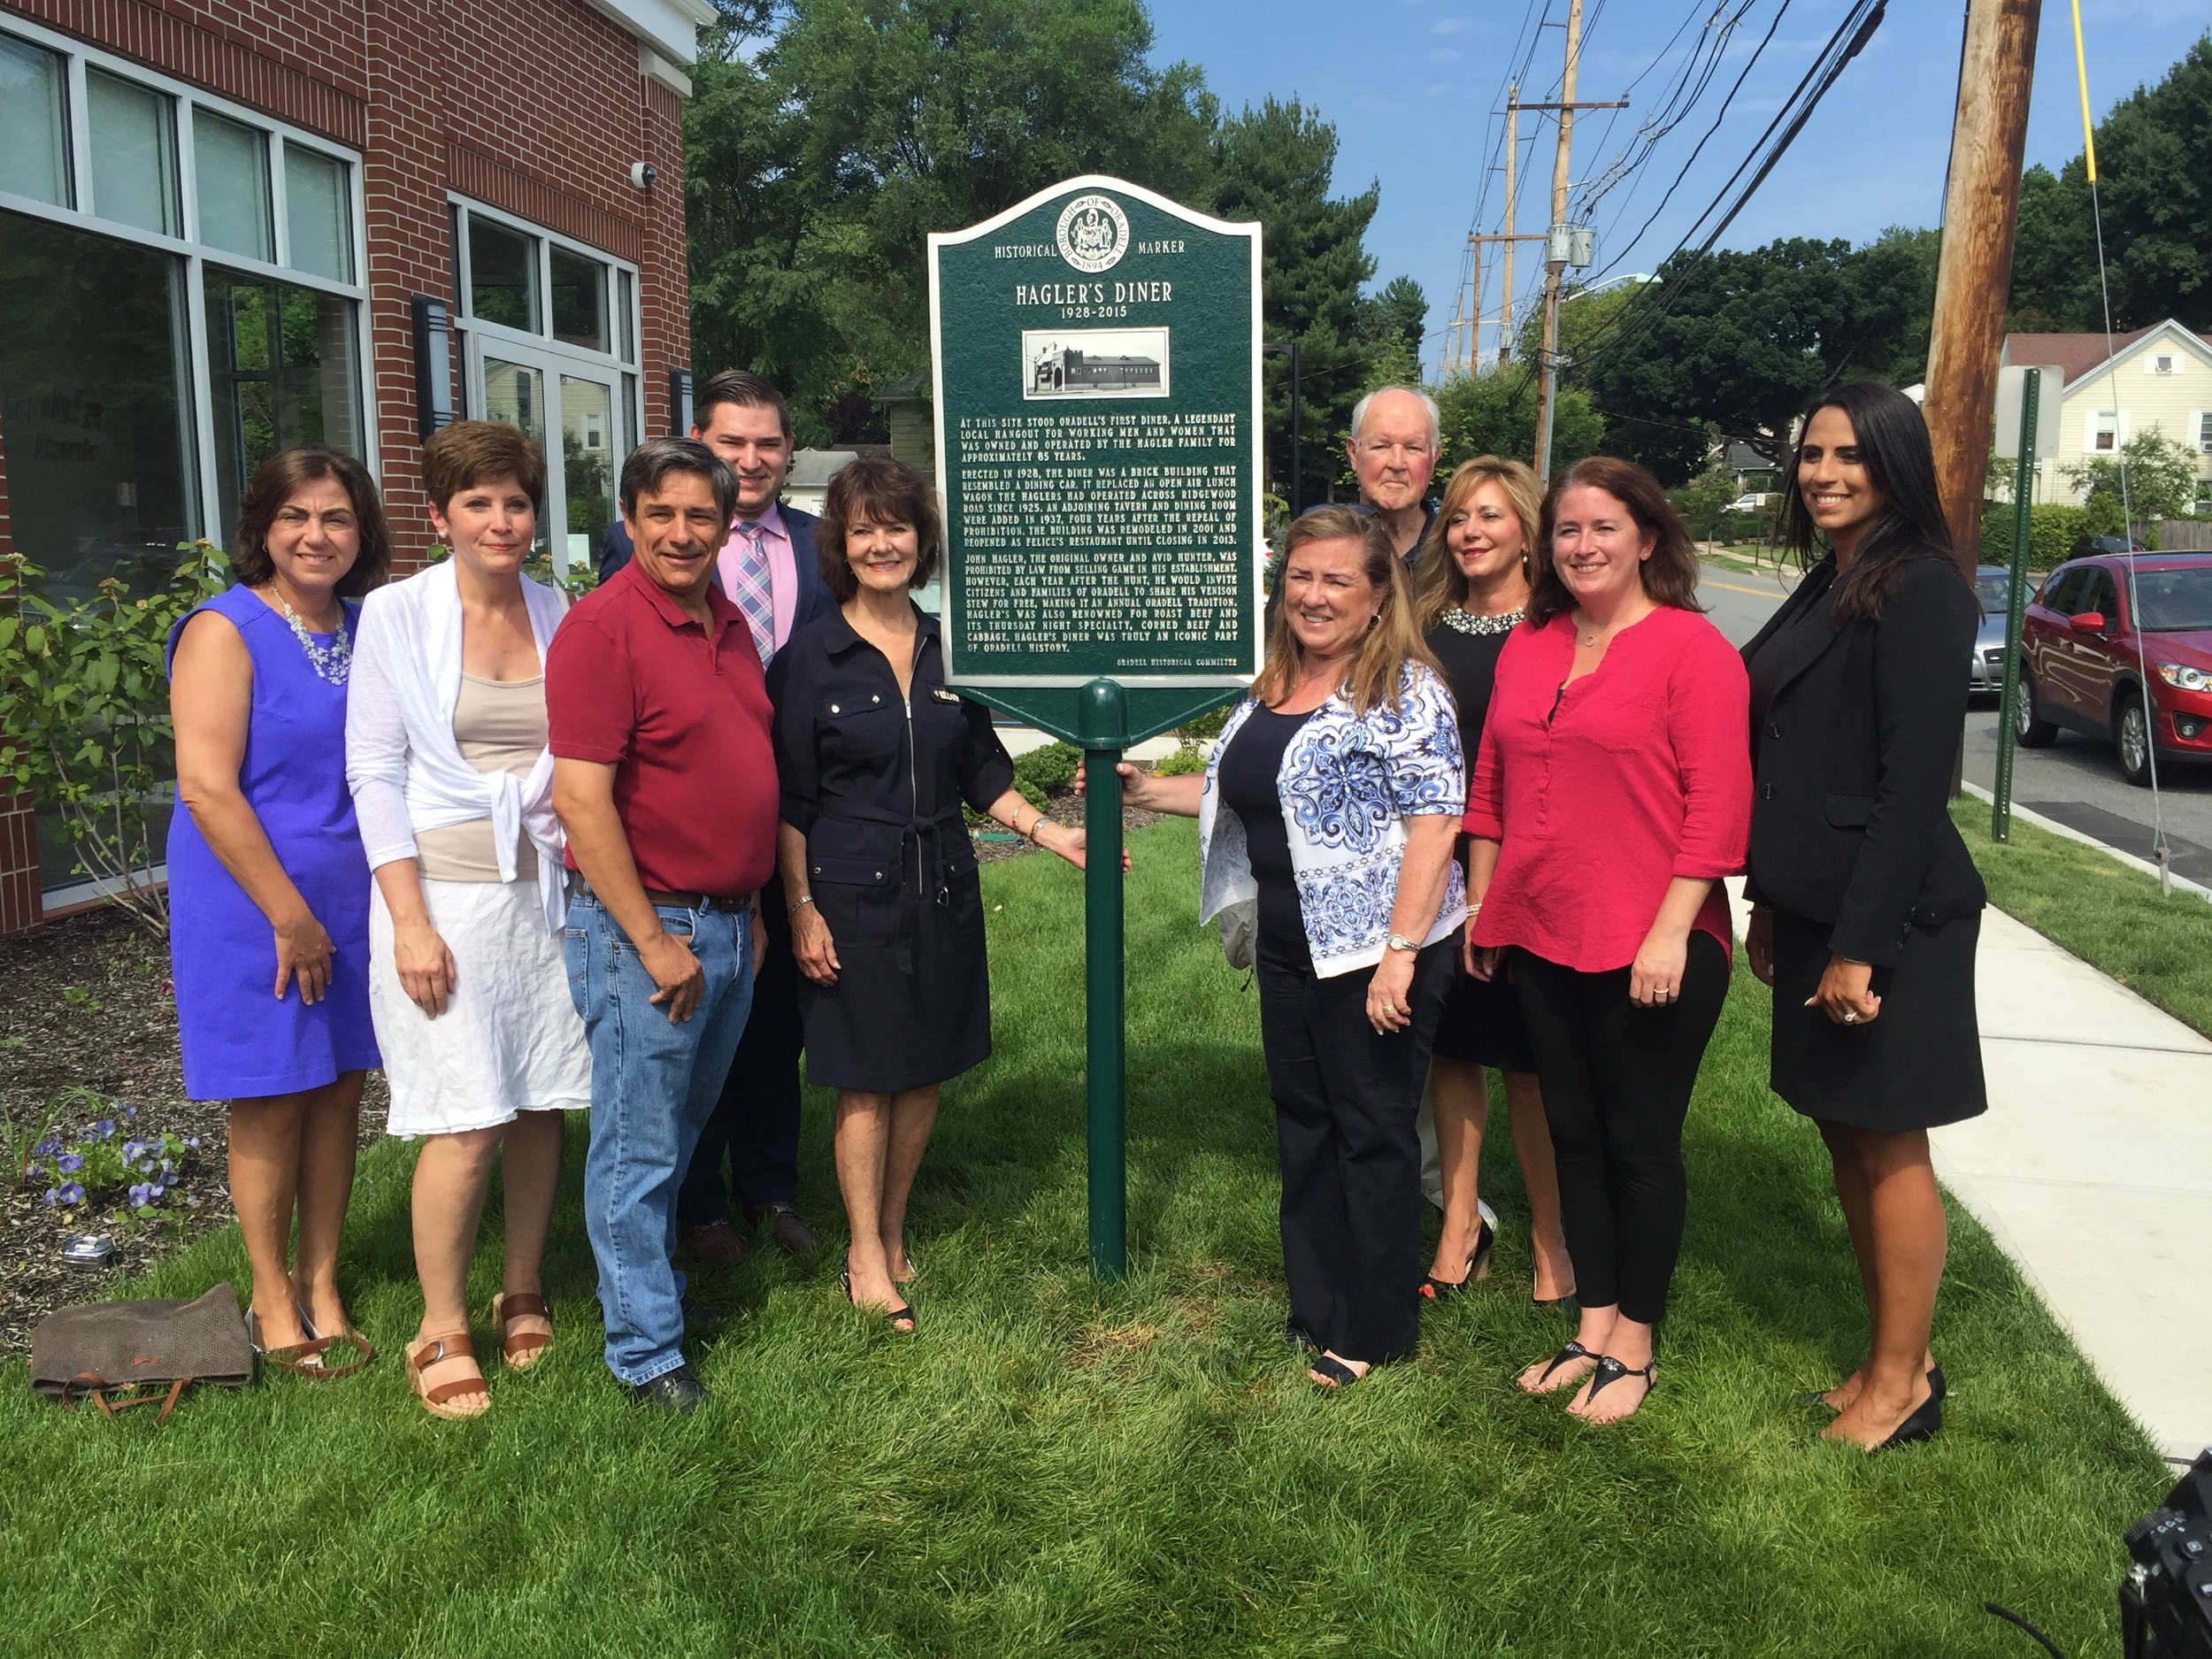 Hagler's Diner Dedication. July 30, 2016. Mayor Dianne Camelo Didio, Councilwoman Tracy Schoenberg, Carol Males, Sam Tripsas, Joanne Young, George Carter, and others attended this event to celebrate the history of this historic landmark that stood for 87 years.